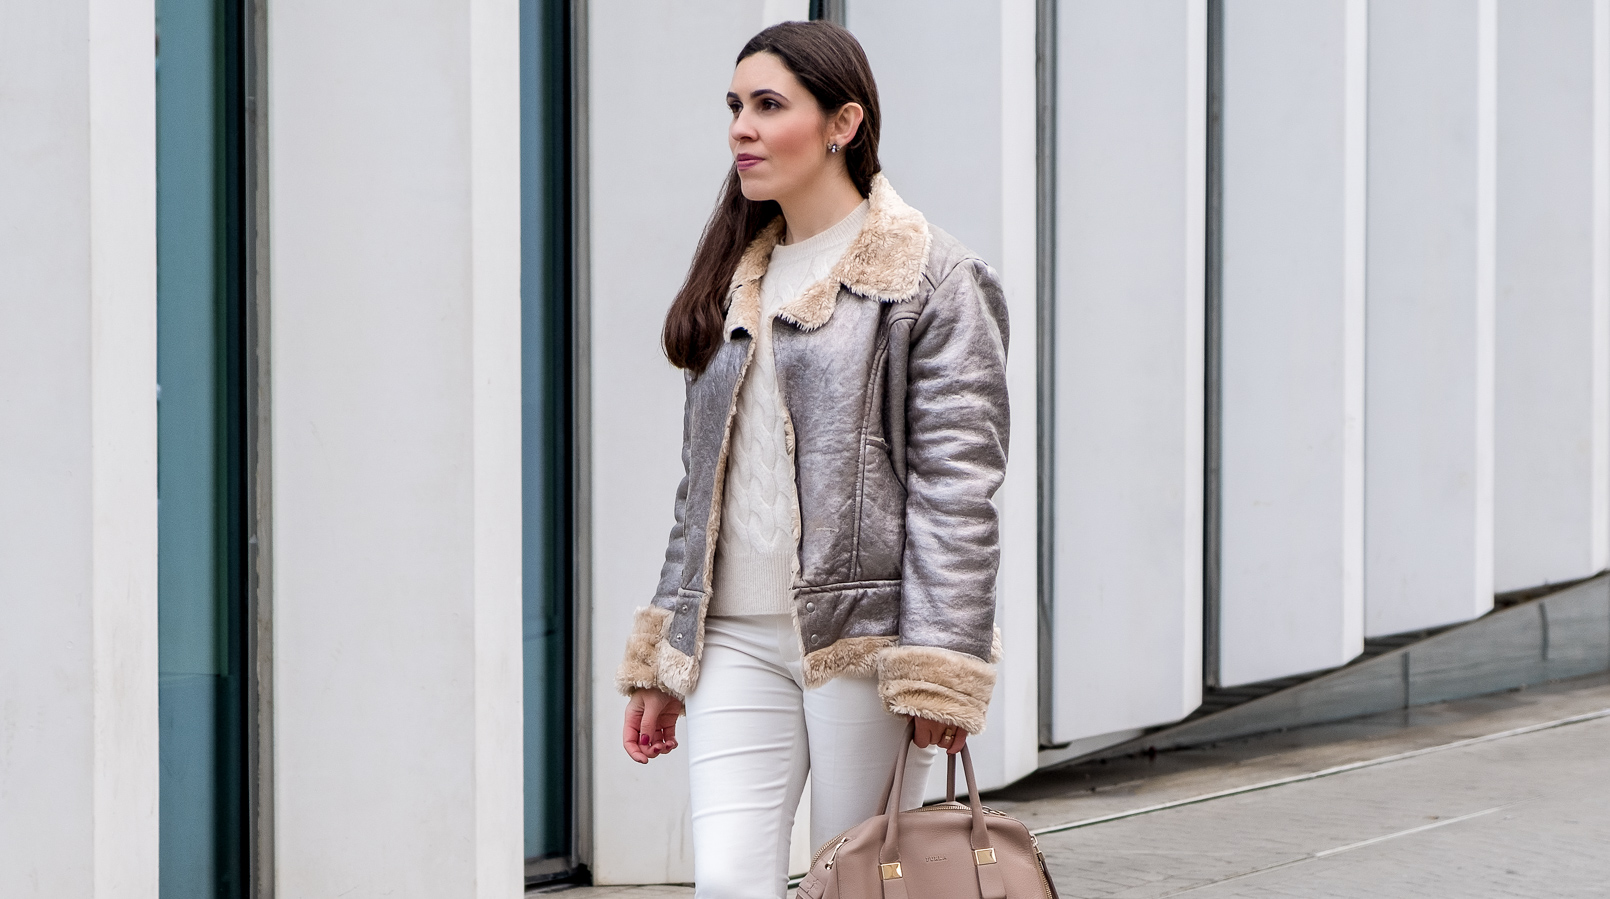 Le Fashionaire Are we too influenced by instagram? eights cashmere nude sweater knit mango white zara trousers 5404F EN